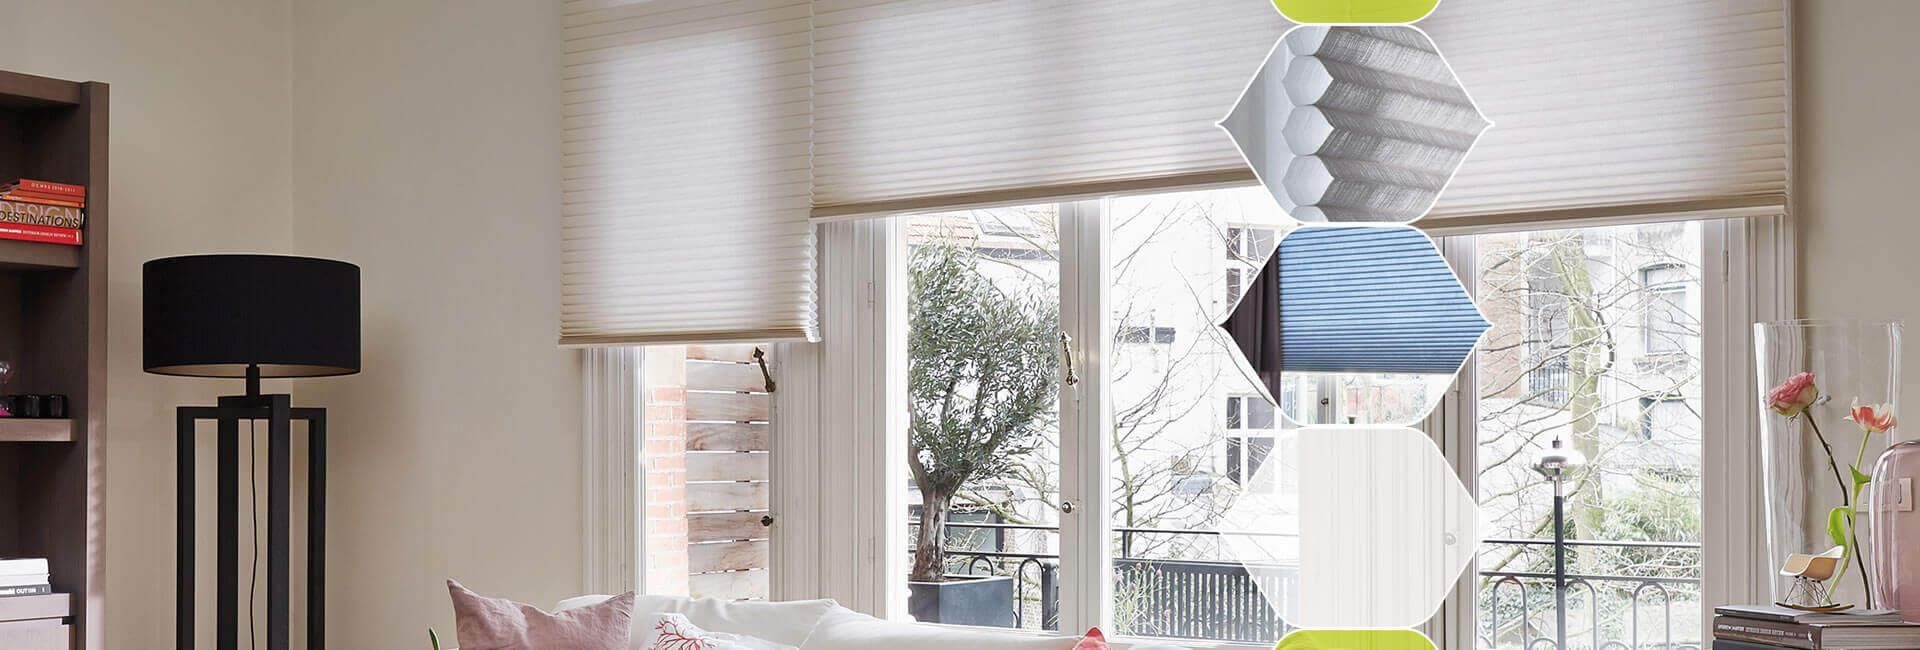 Duette Lounge Blinds energy saving blinds for your home House